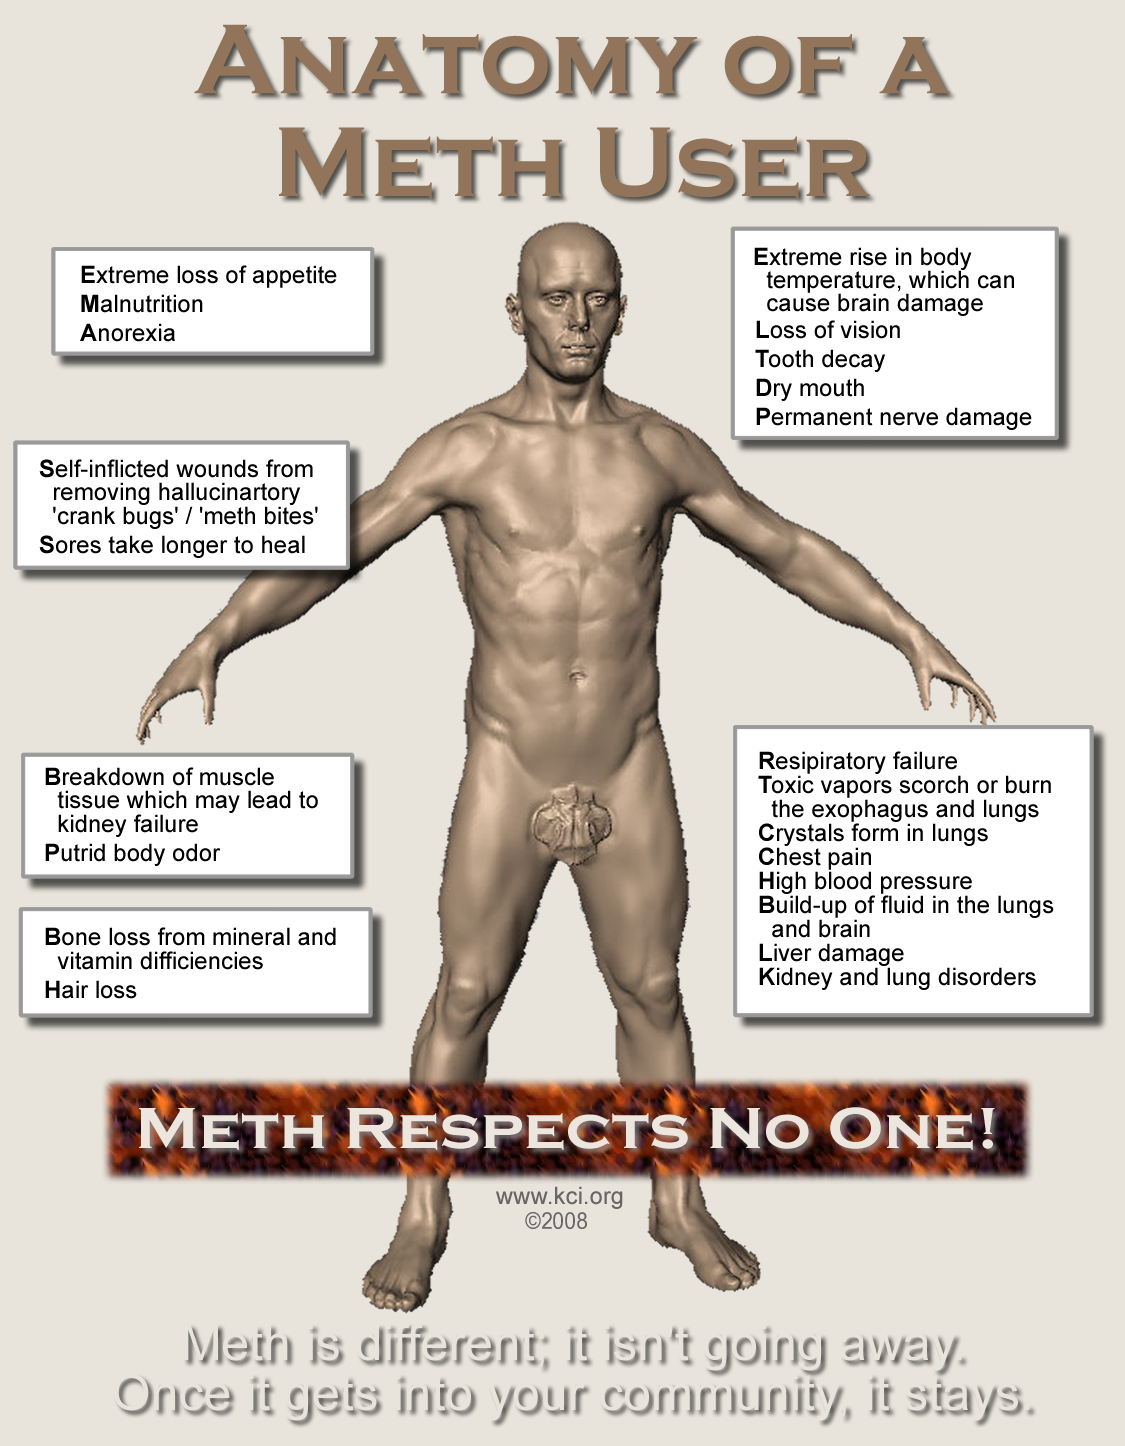 does provigil have withdrawal effects of methamphetamine abuse